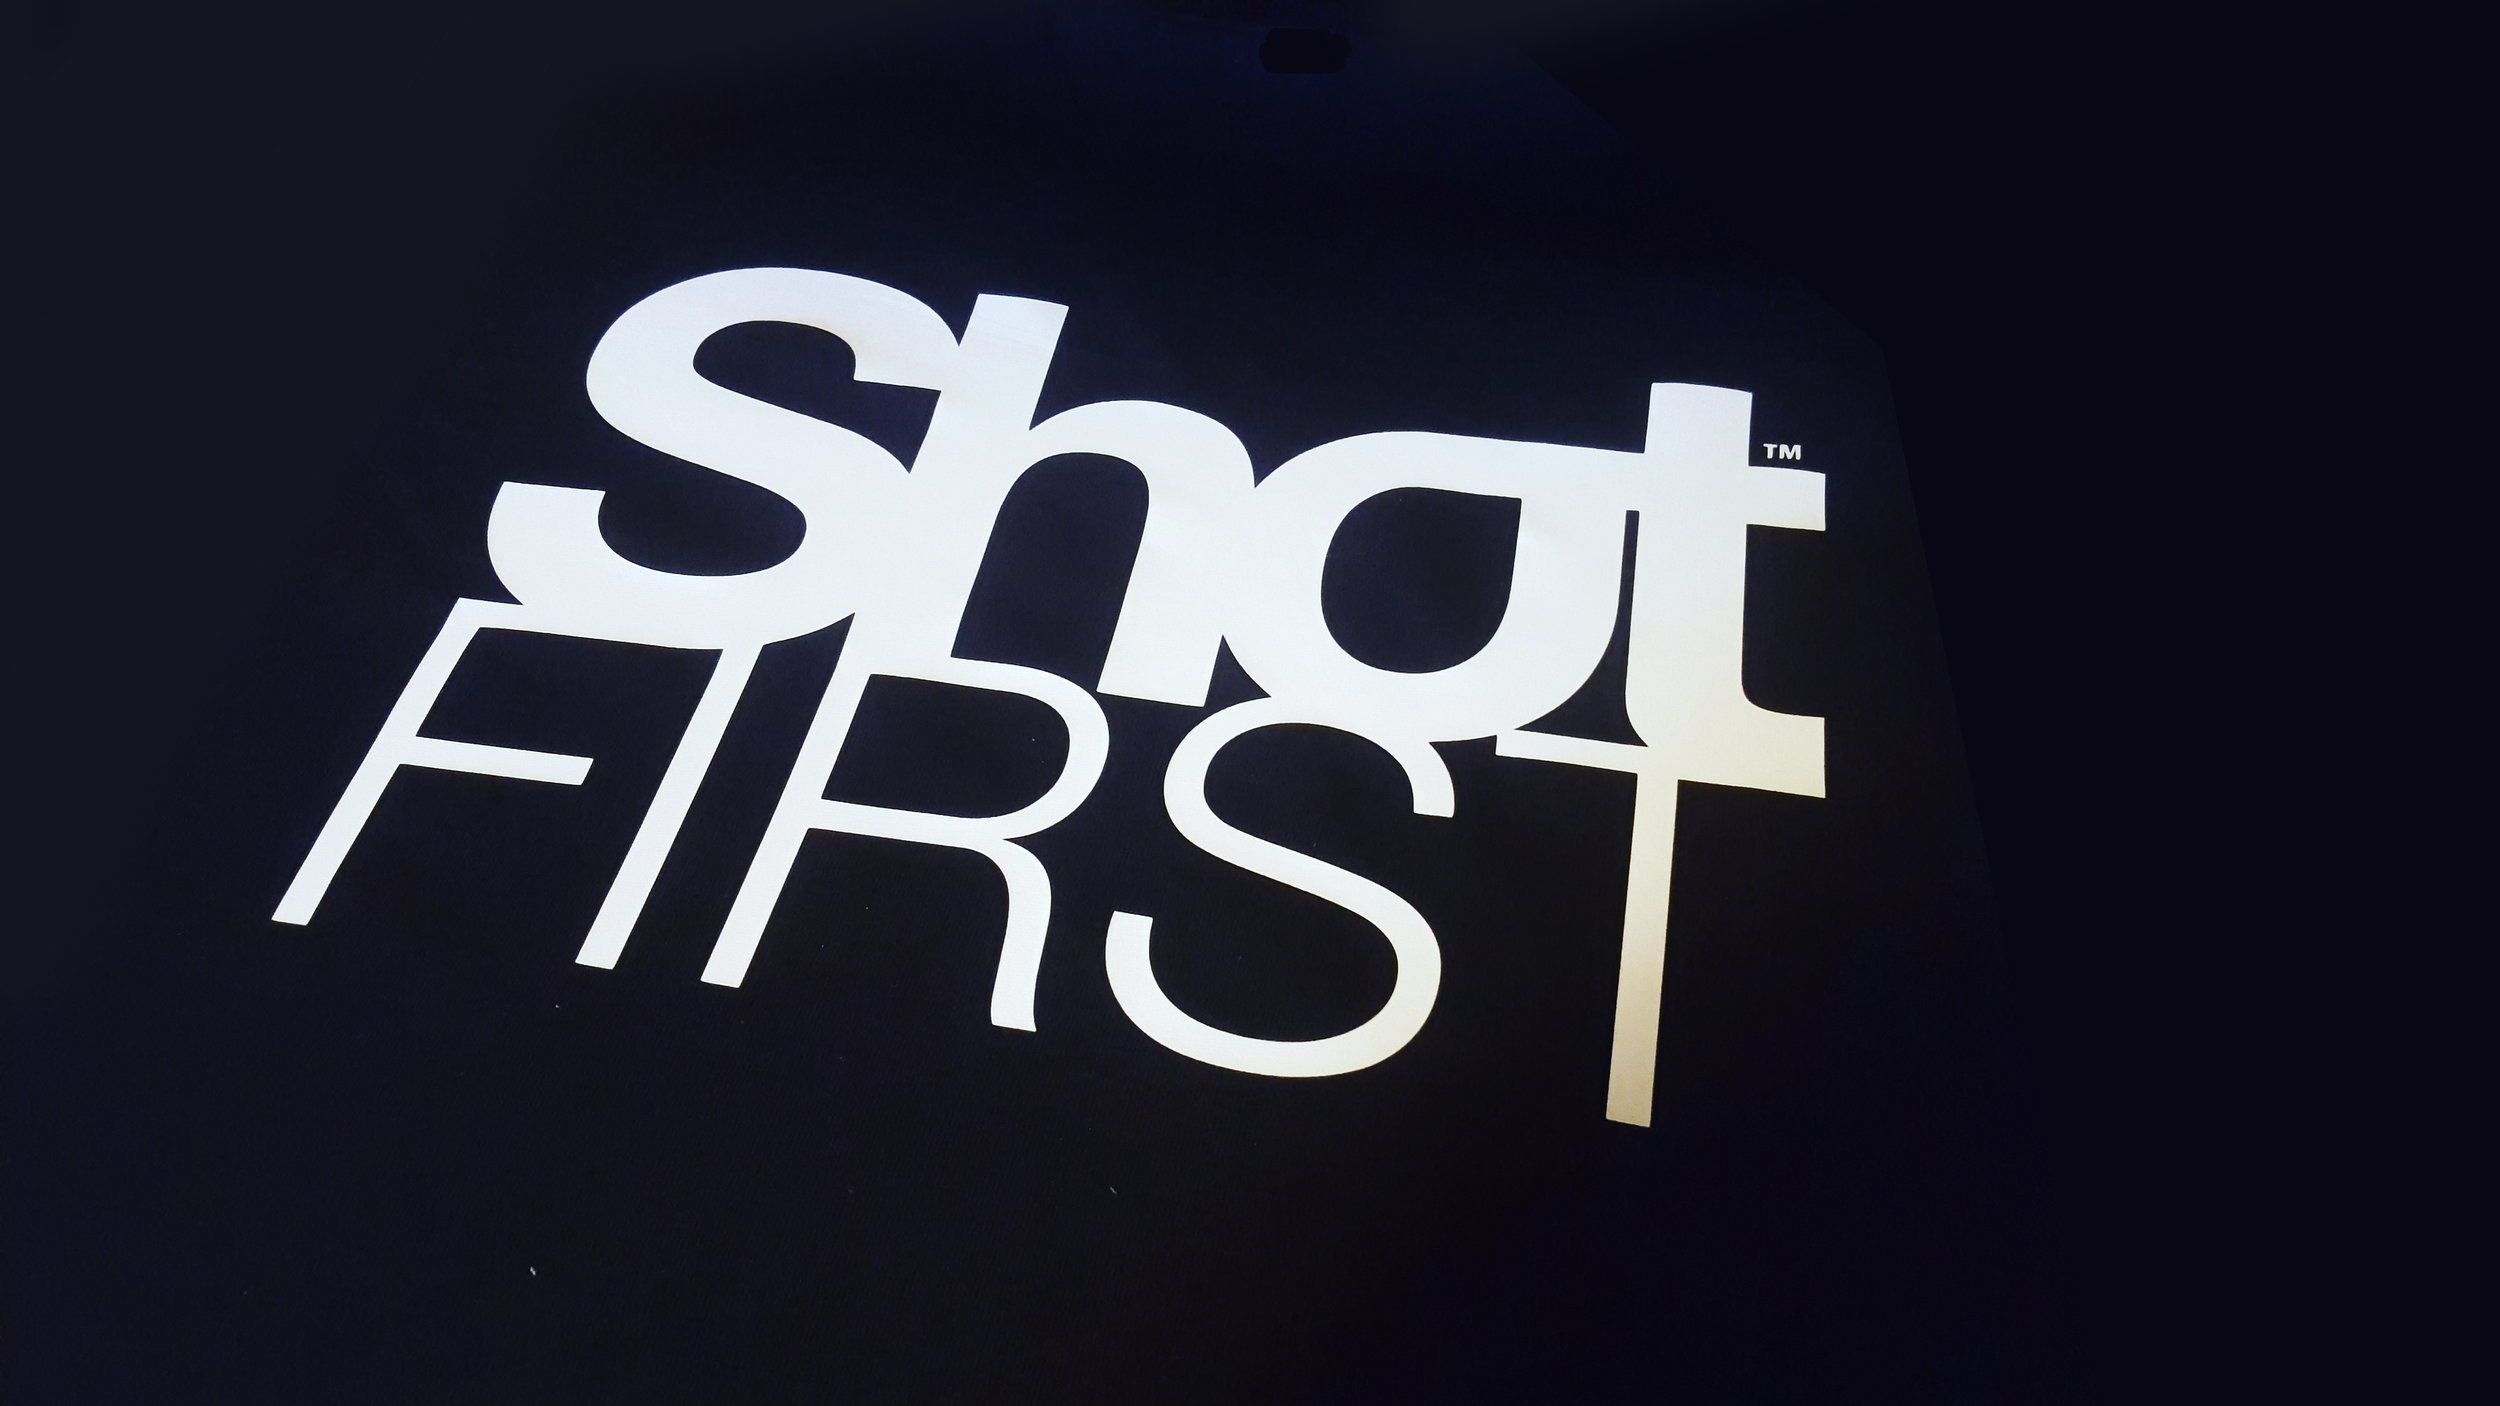 ShotFIRST T-shirt. In honor of those that were not given the benefit of the doubt.